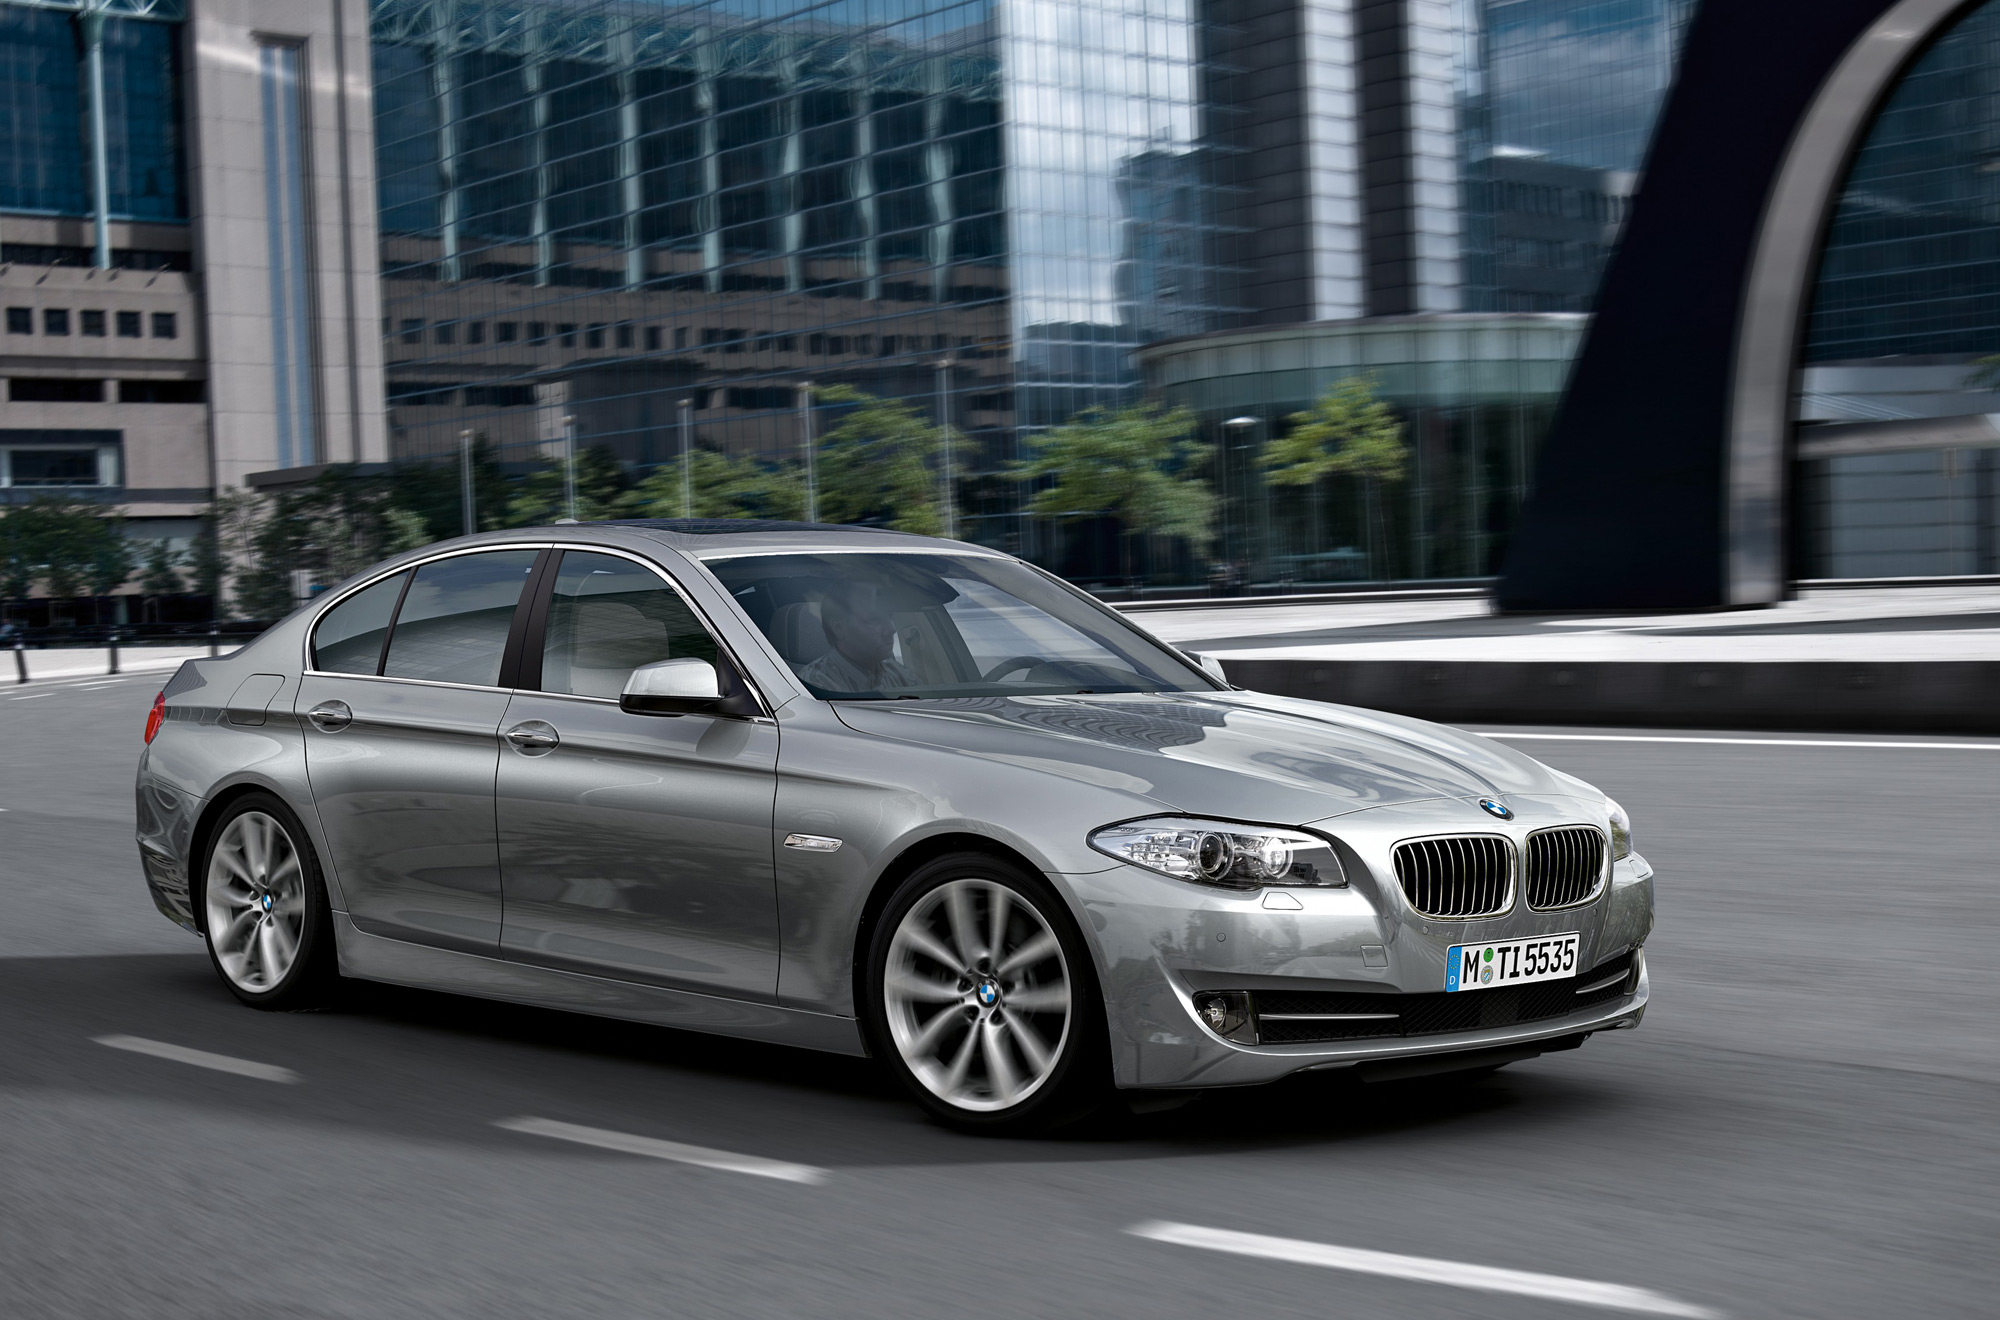 Bmw 5 Serie Ausmotive 2010 Bmw 5 Series Photo Gallery